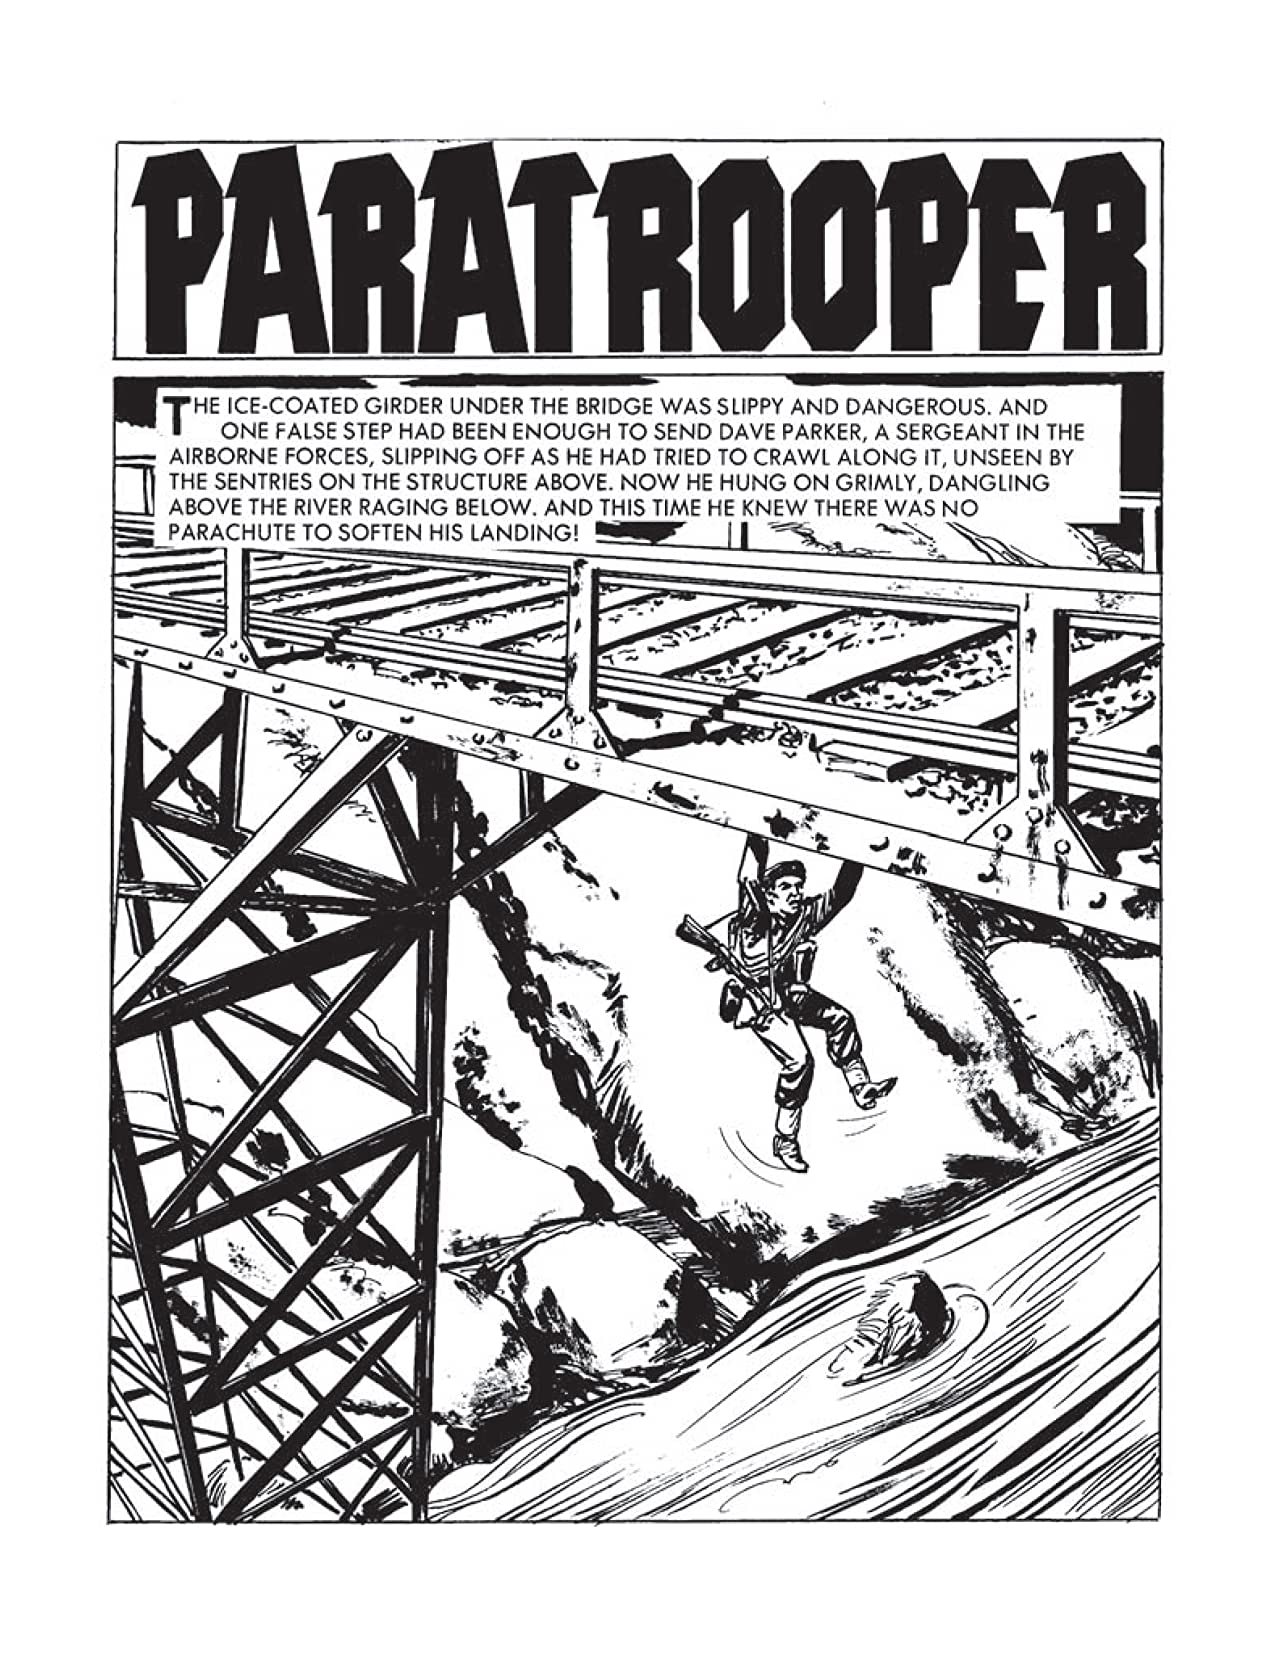 Commando #4390: Paratrooper